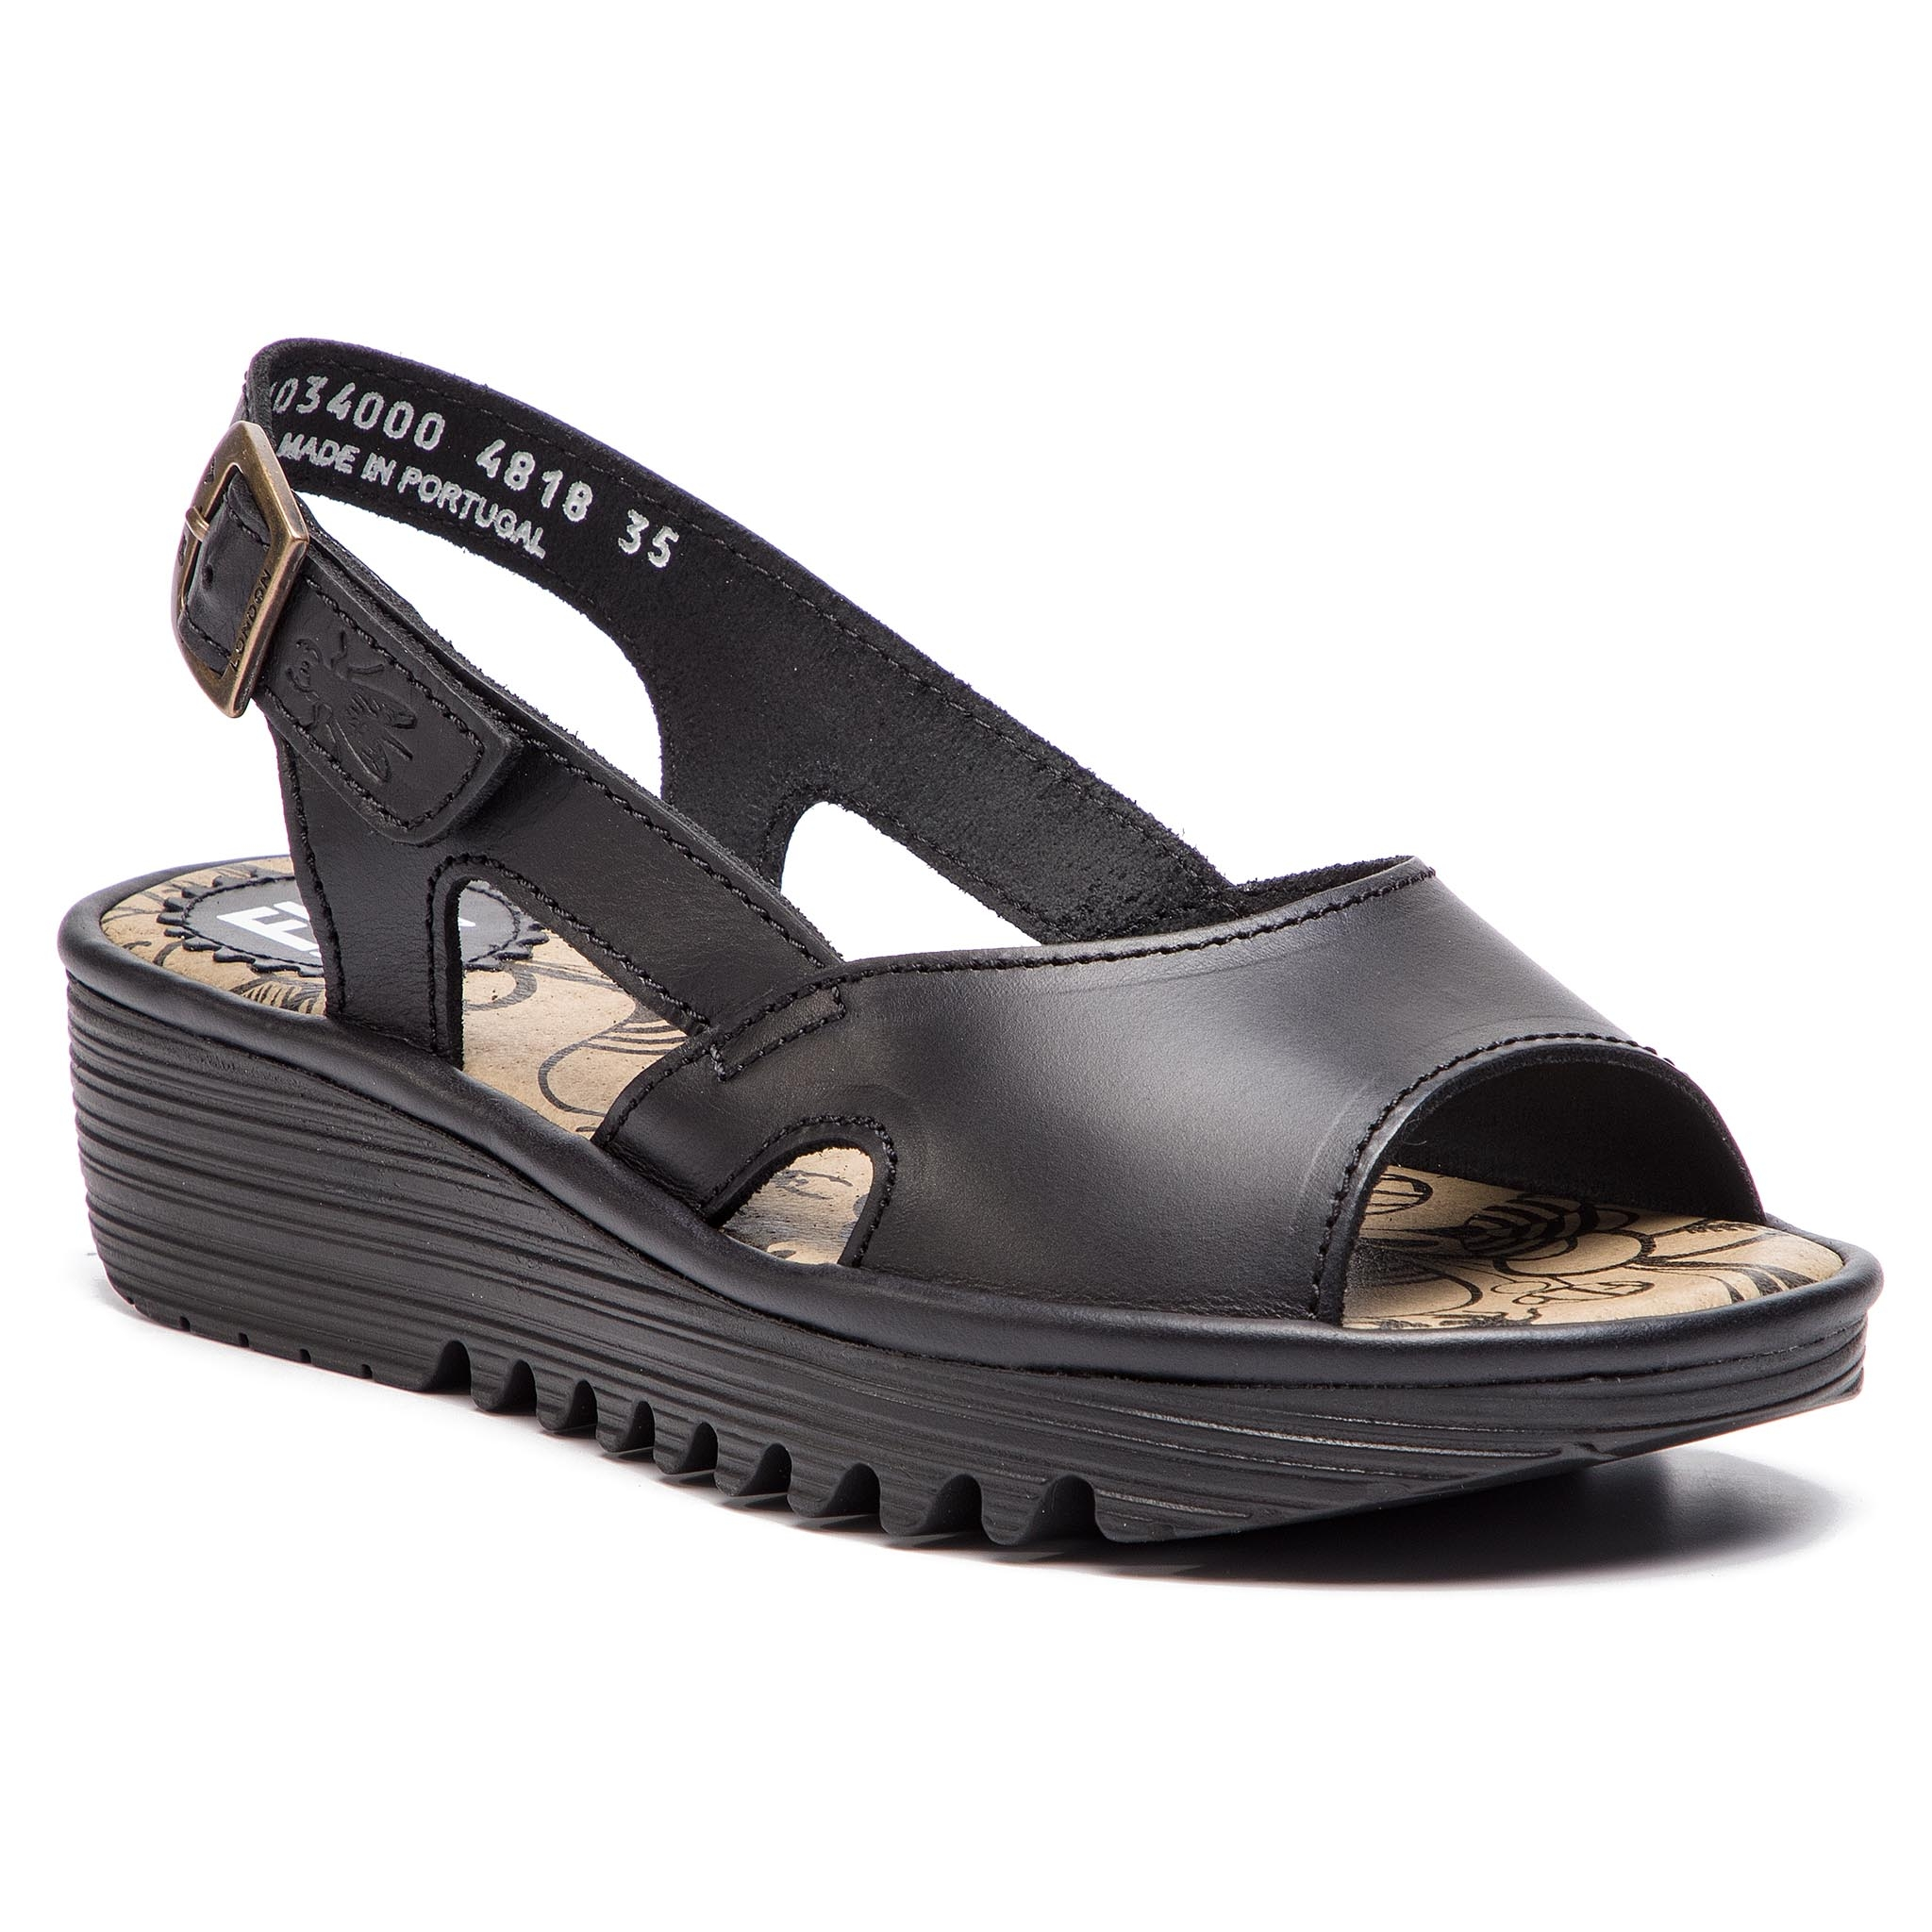 Sandály FLY LONDON - Edonfly P501034000 Black